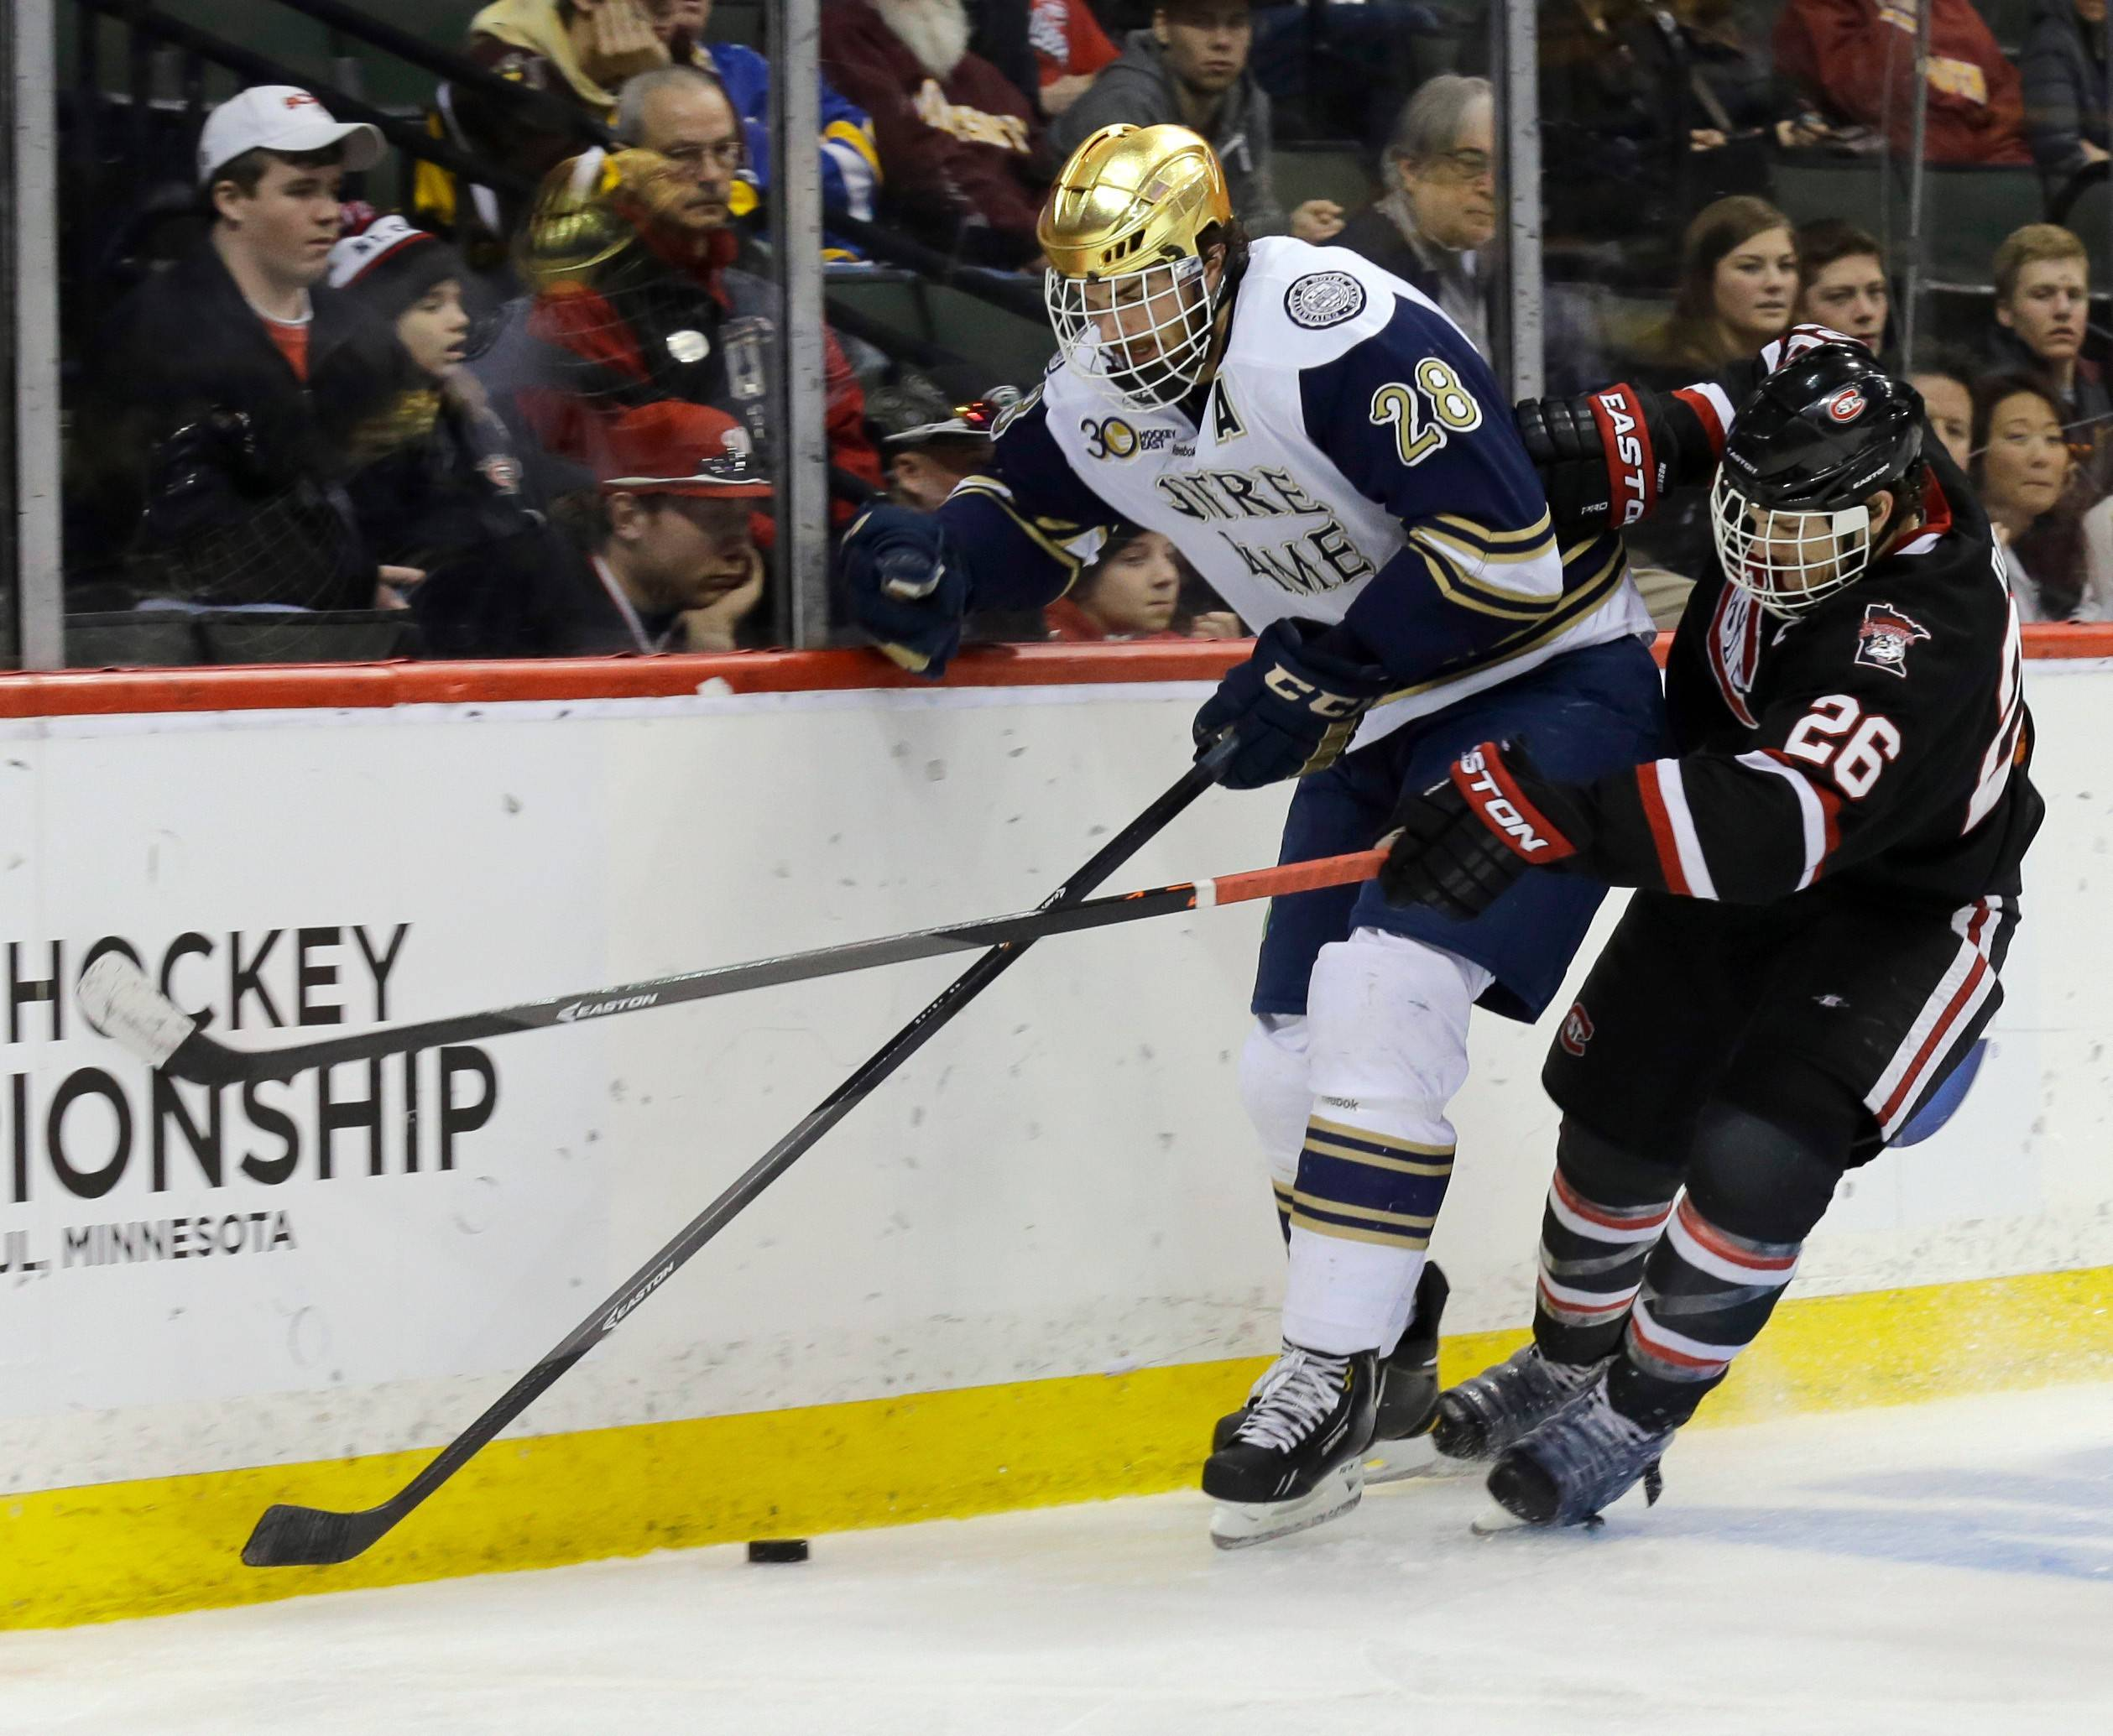 At Notre Dame, defenseman Stephen Johns (28) became a team captain his senior year and showed his leadership skills. The 22-year-old Blackhawks prospect played for Rockford after the college season concluded.